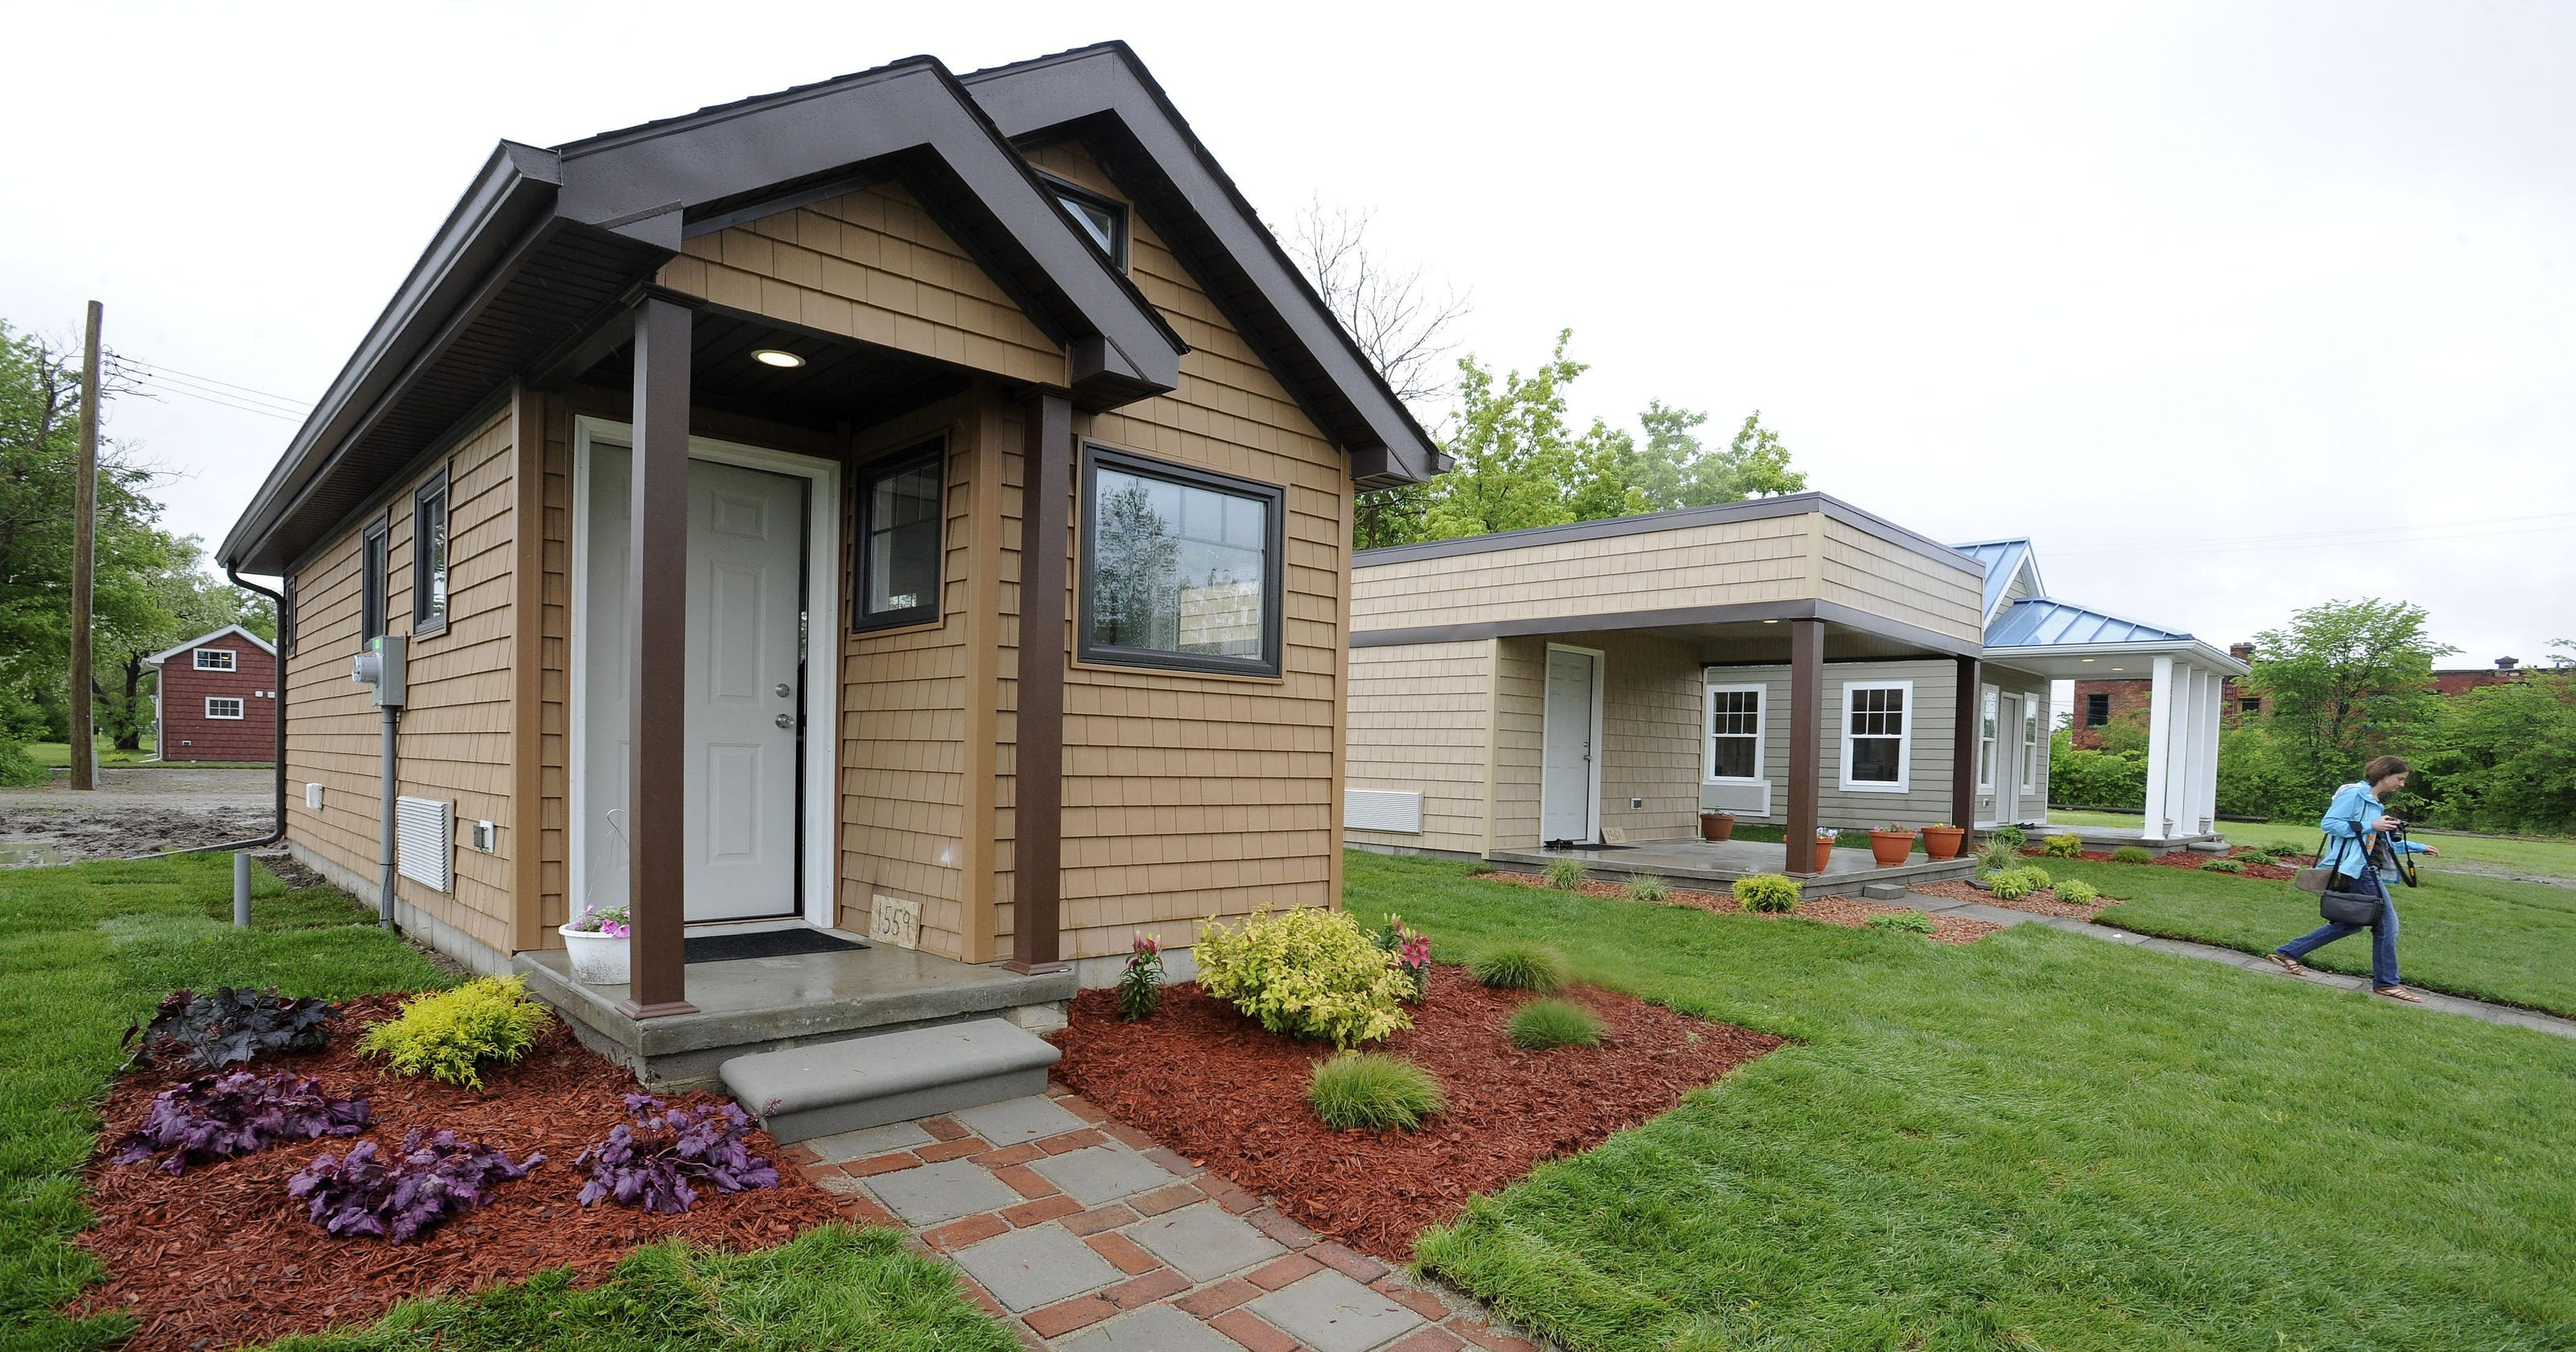 Public gets first, only peek at Detroit tiny homes